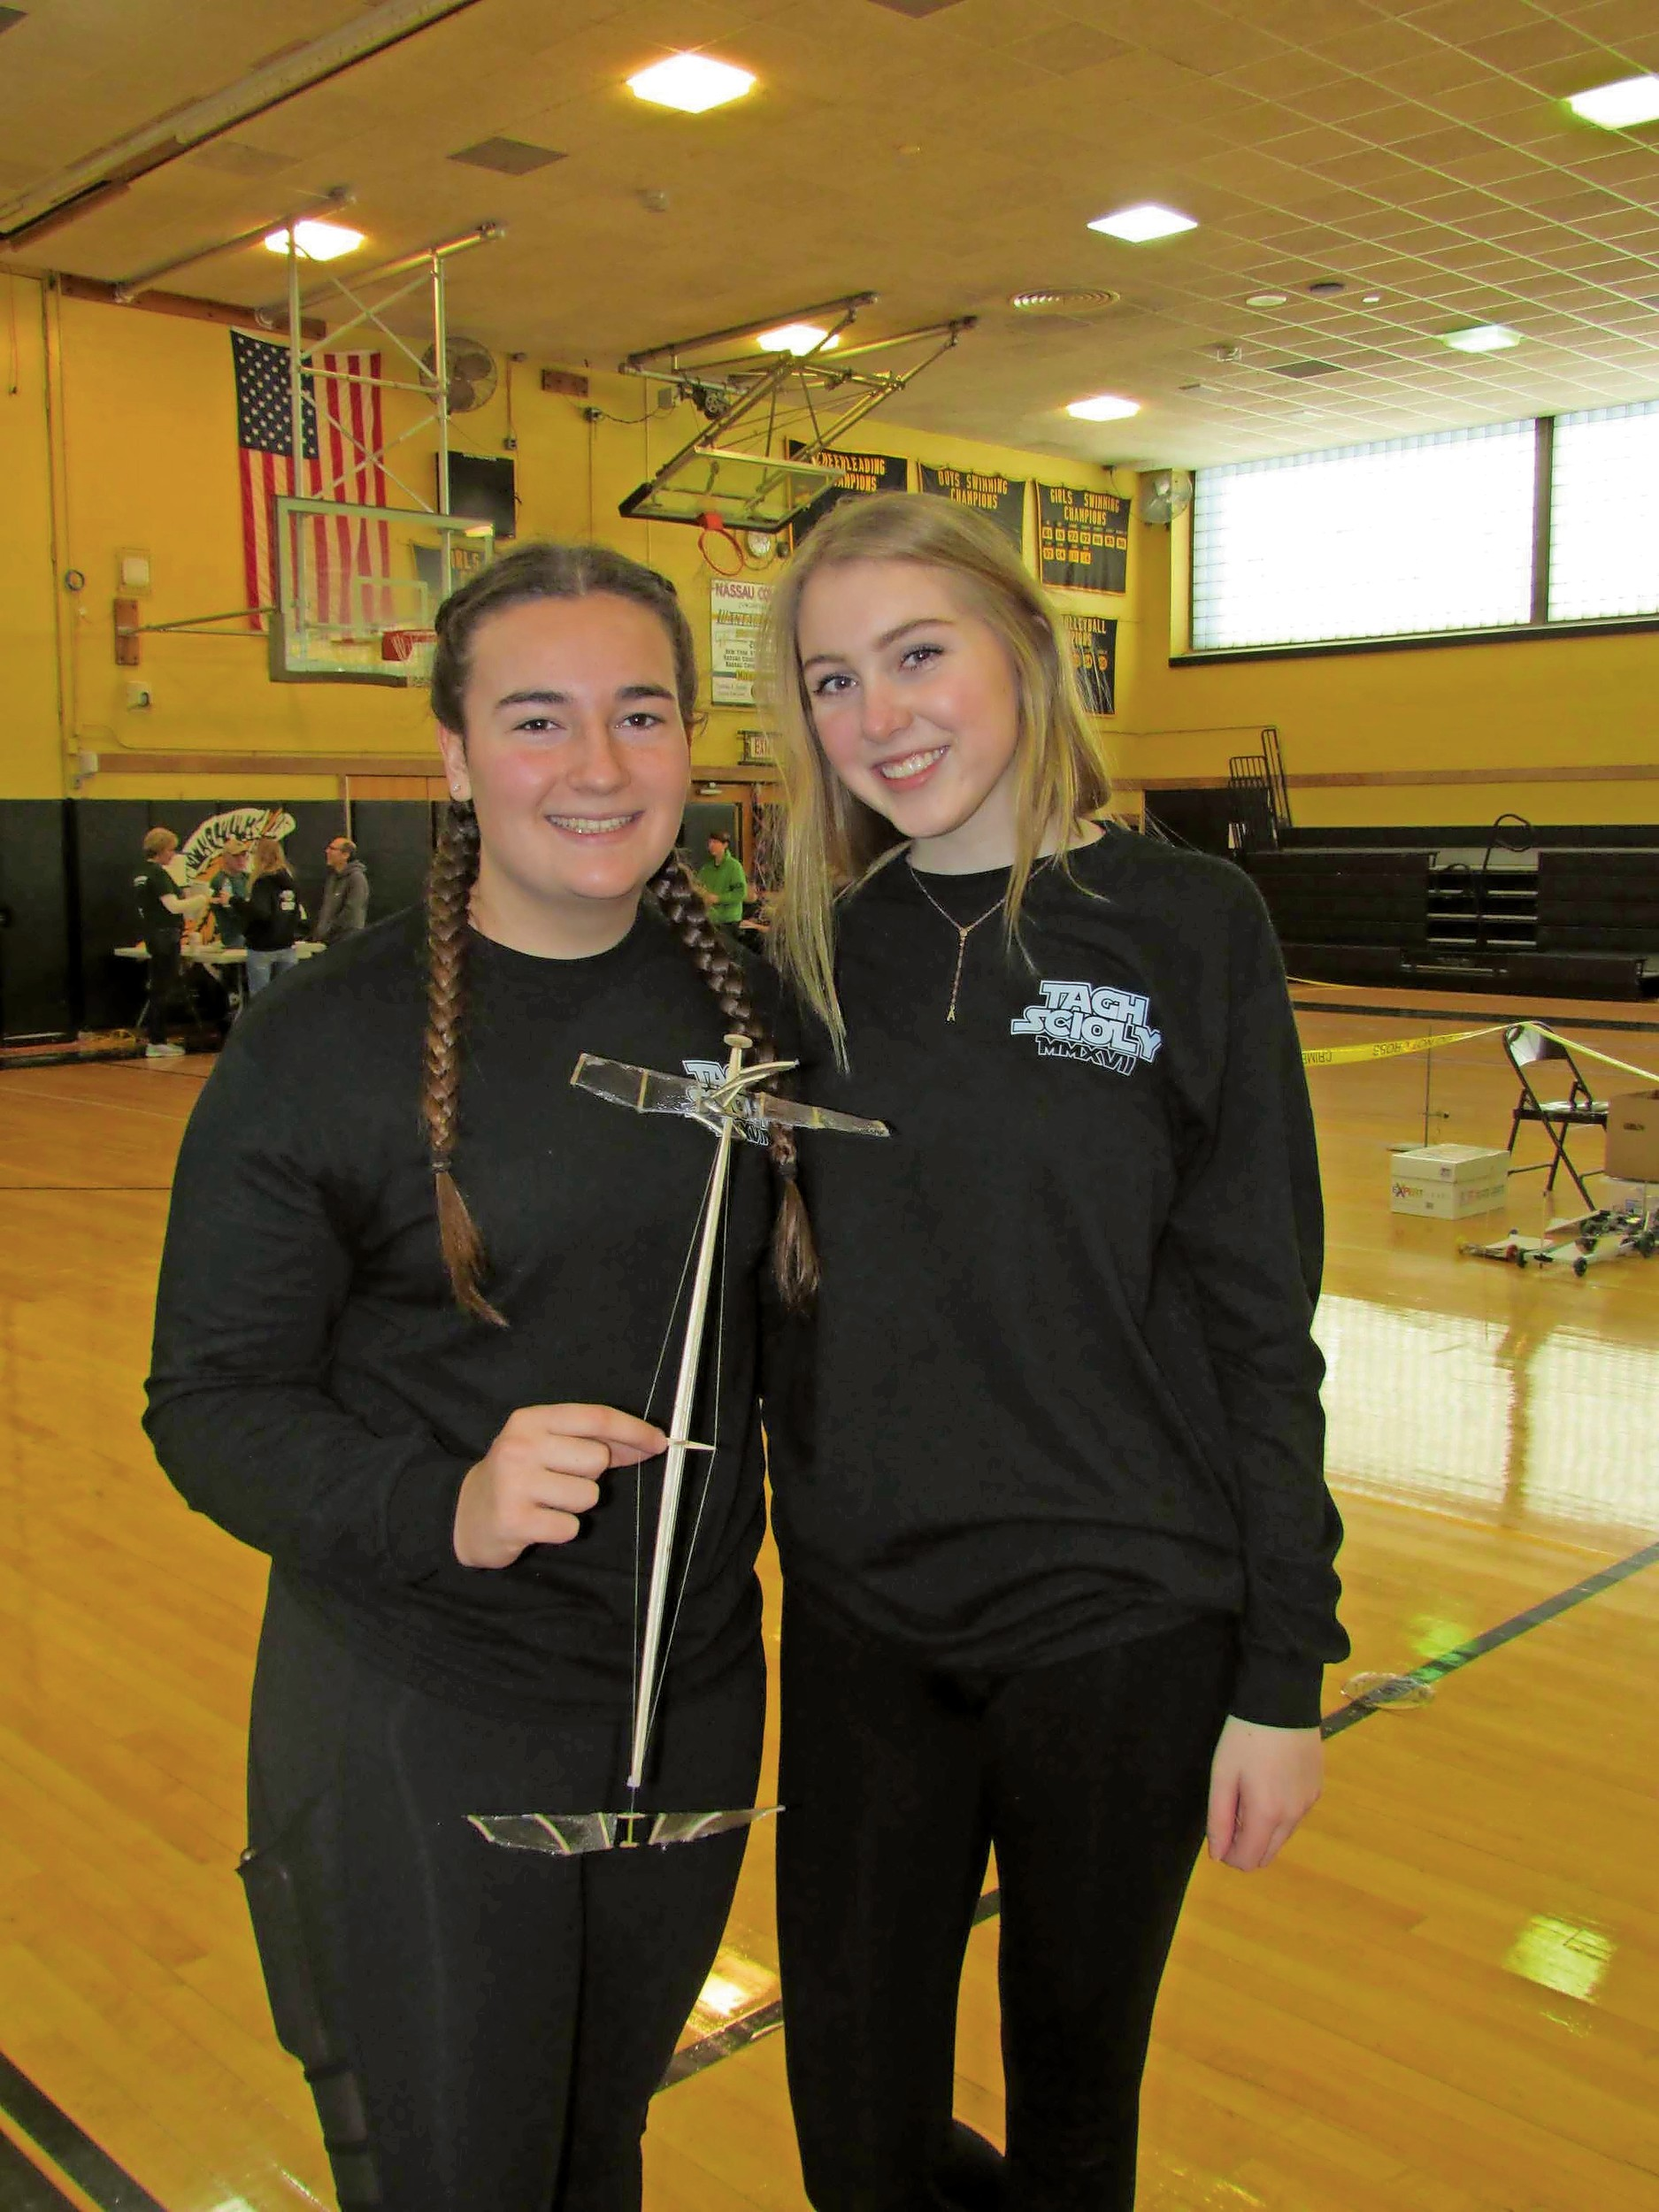 Emily Fuchs and Abigail Cullen, Wantagh High School students, competed in the helicopter event.